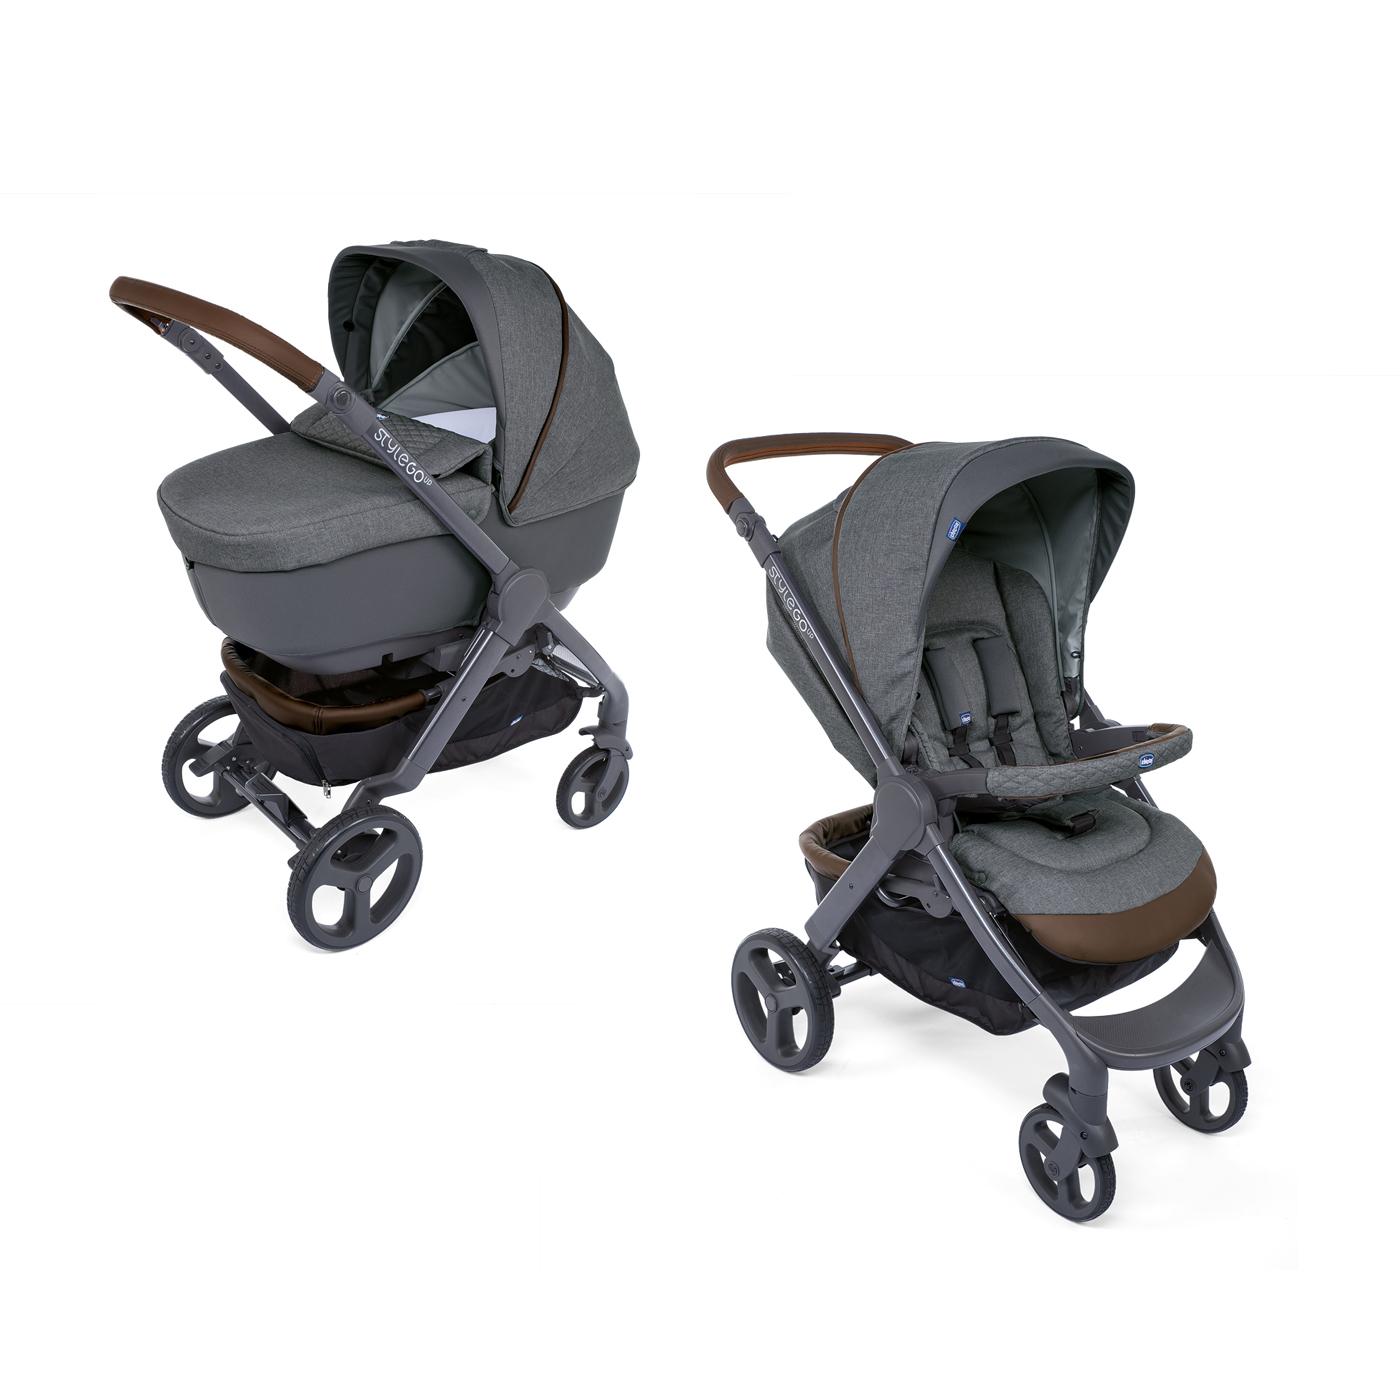 Carucior copii Chicco Duo Style Go Up Crossover, Cool Grey (Gri), 0luni+